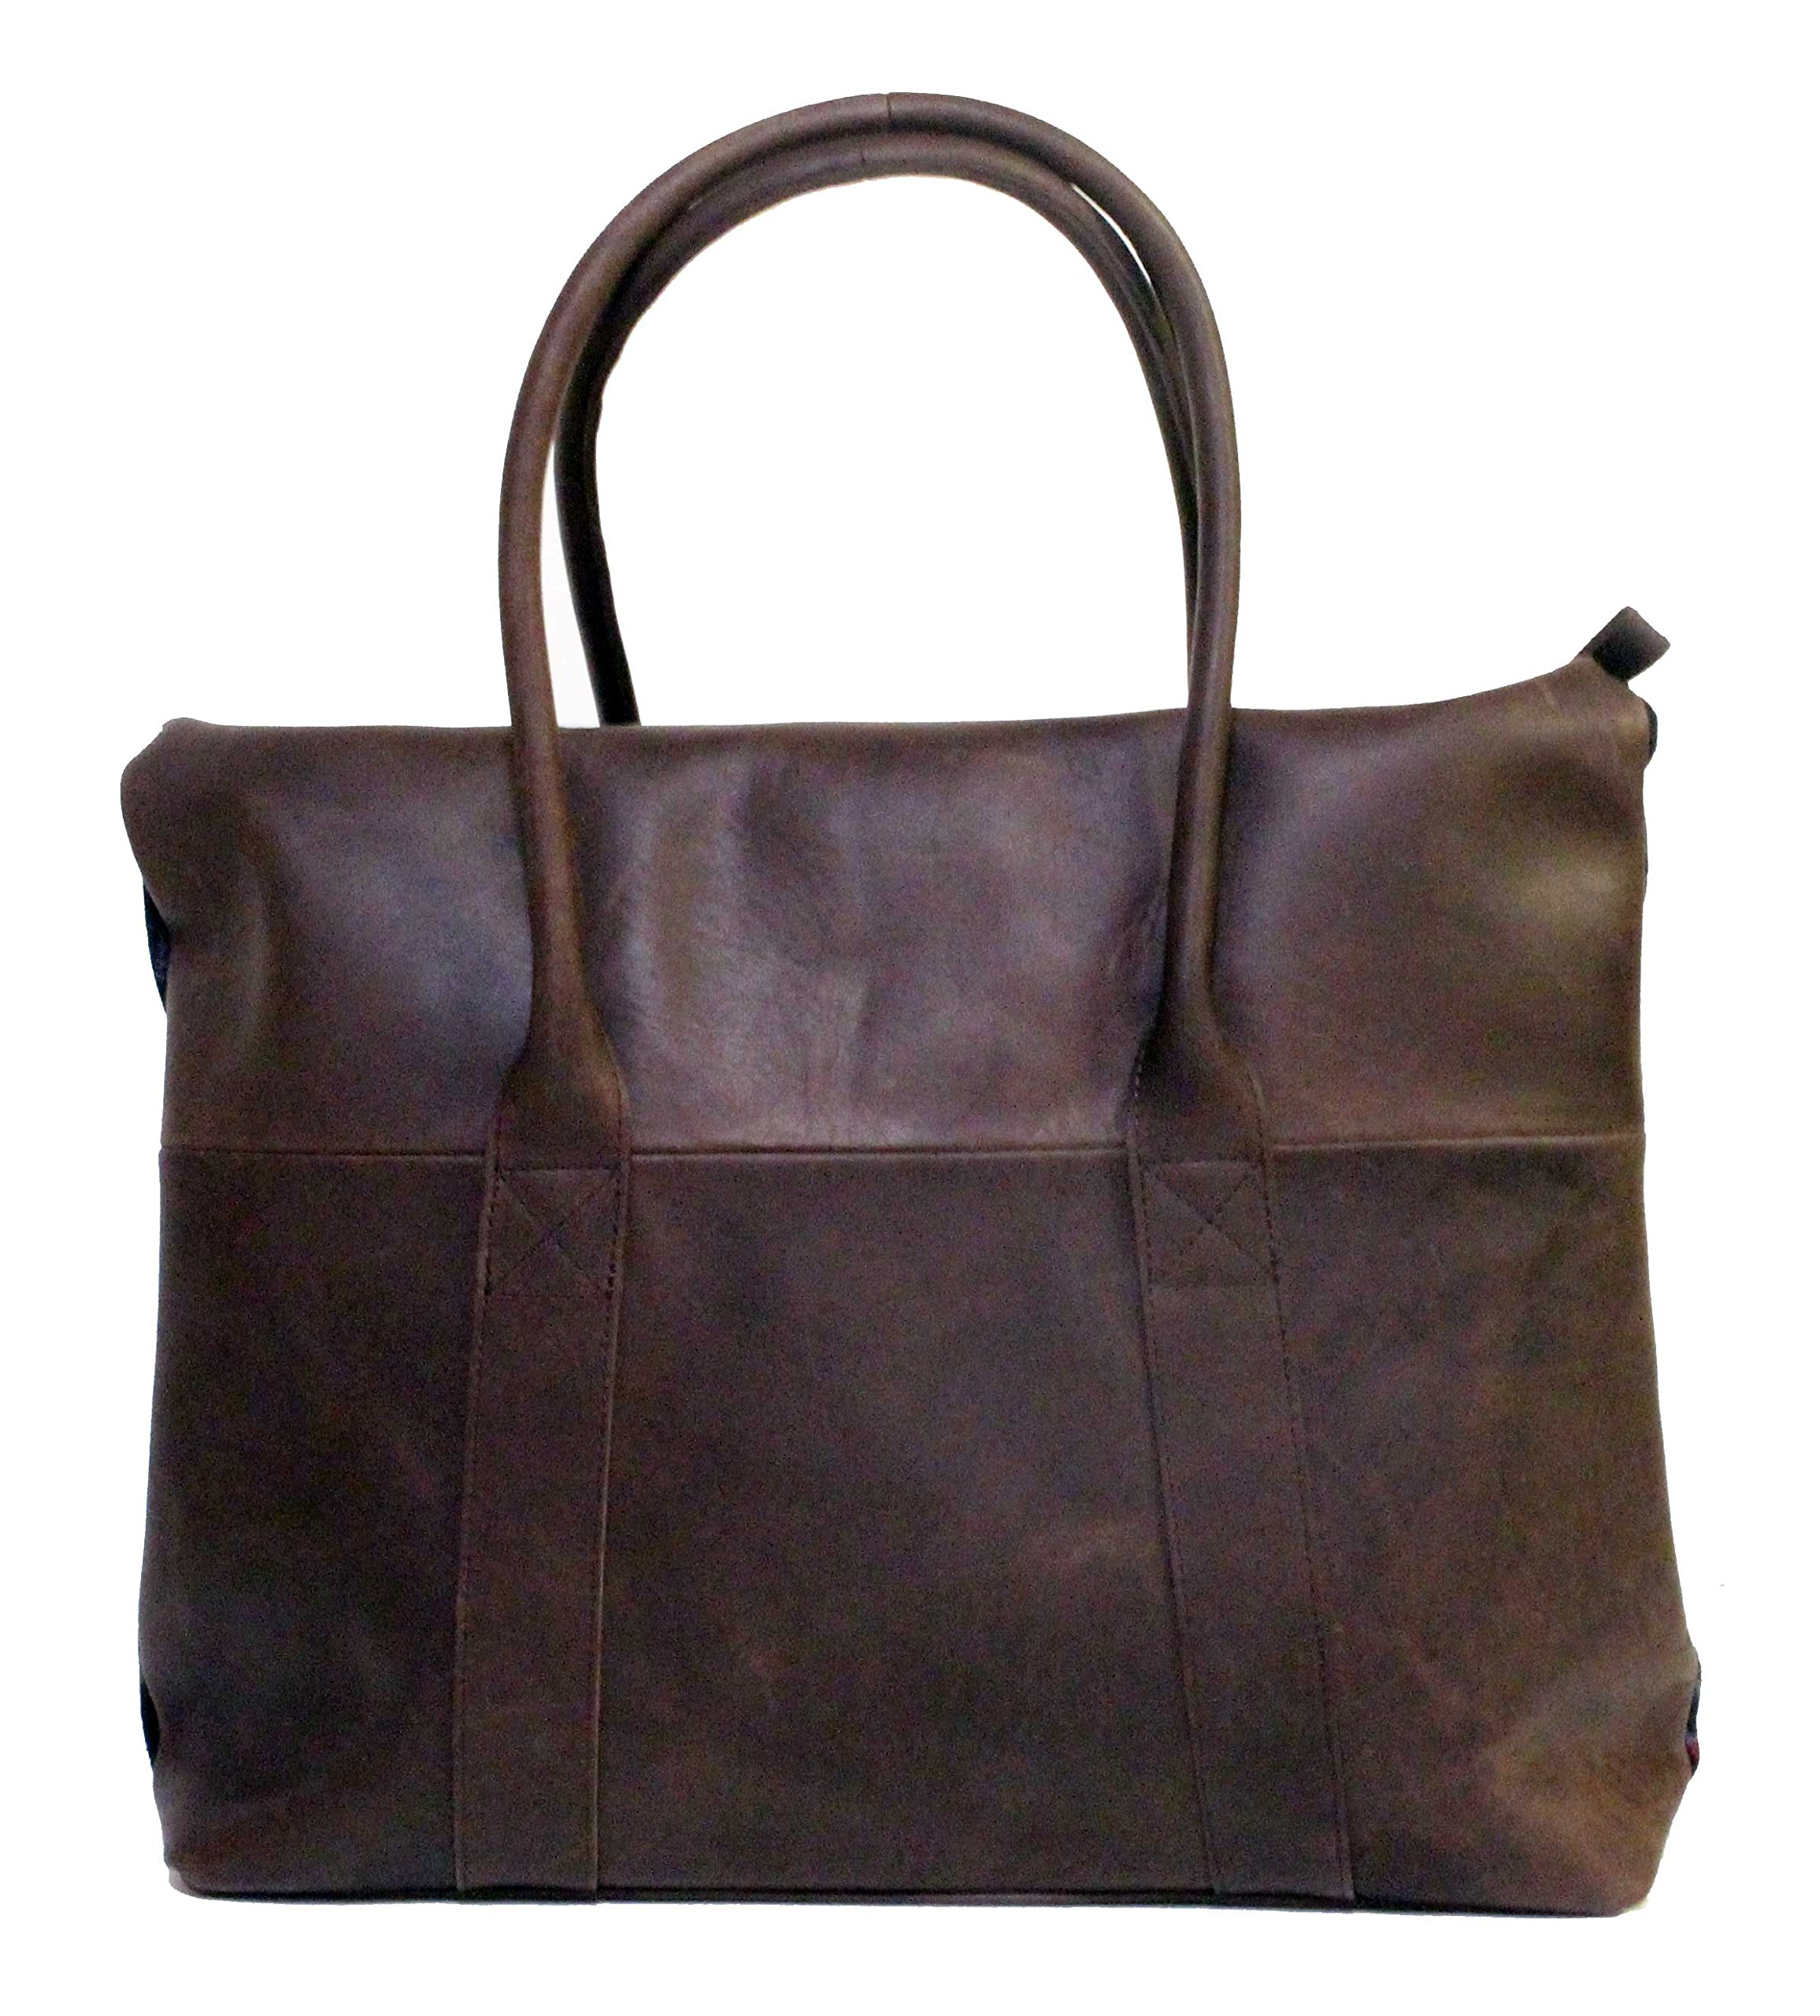 Pendleton Black Coyote Butte Leather Travel Tote | Carry All | Bag by Pendleton Woolen Mills (Image #3)